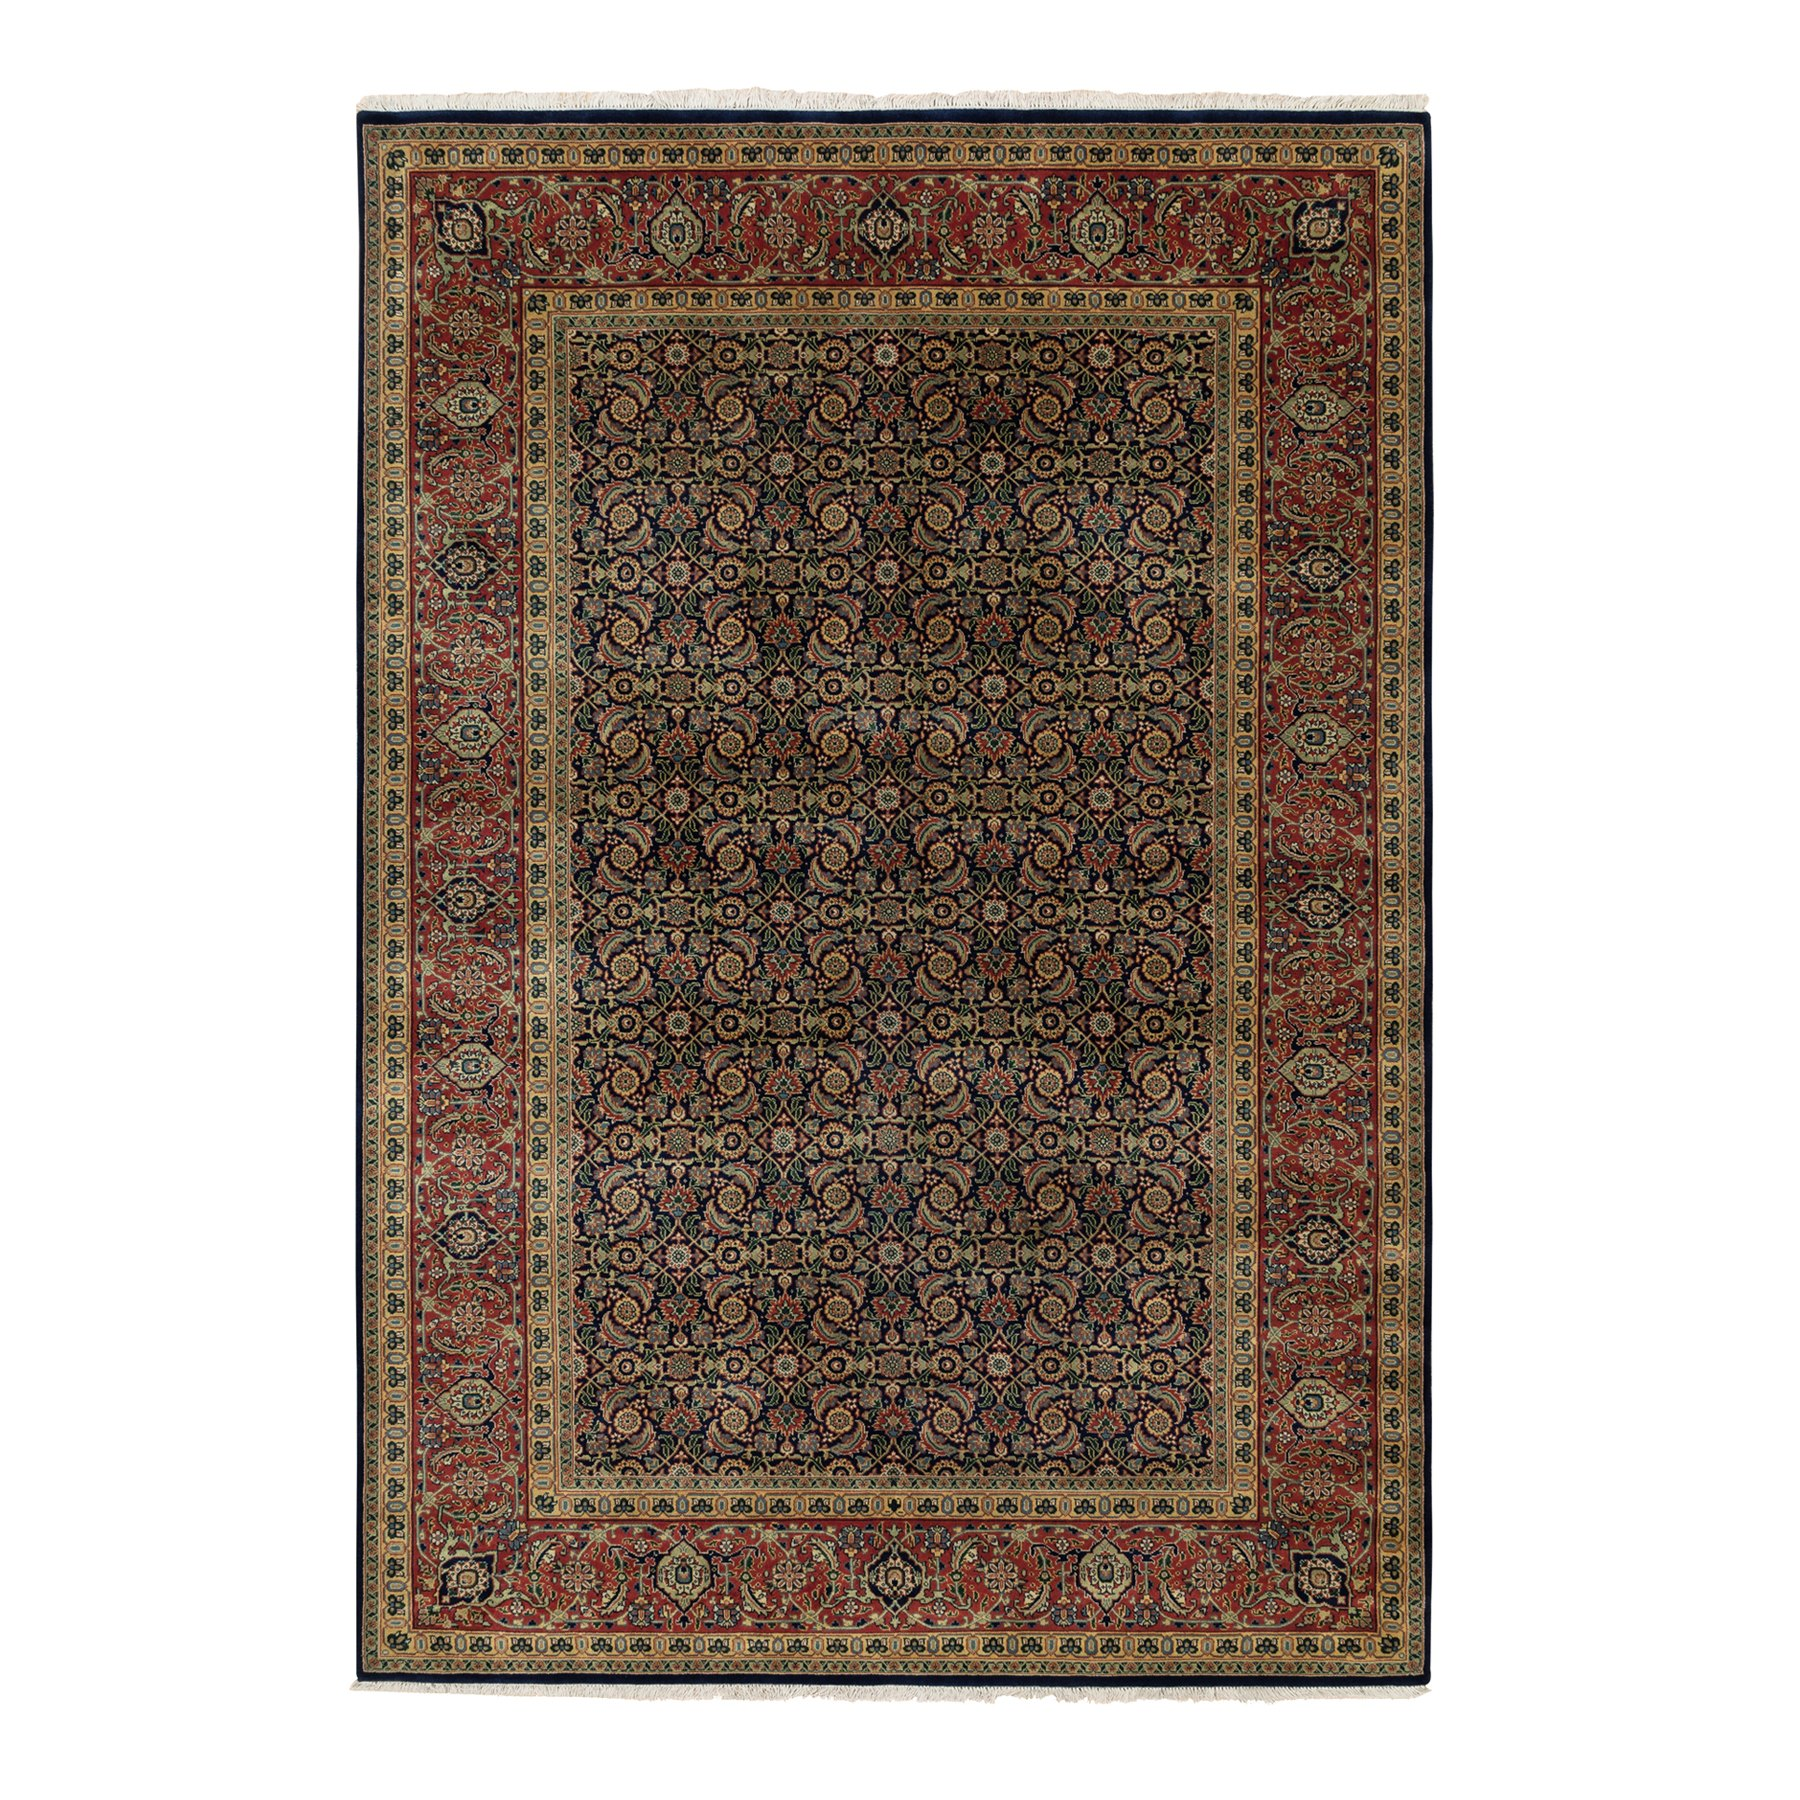 Pirniakan Collection Hand Knotted Blue Rug No: 1117276